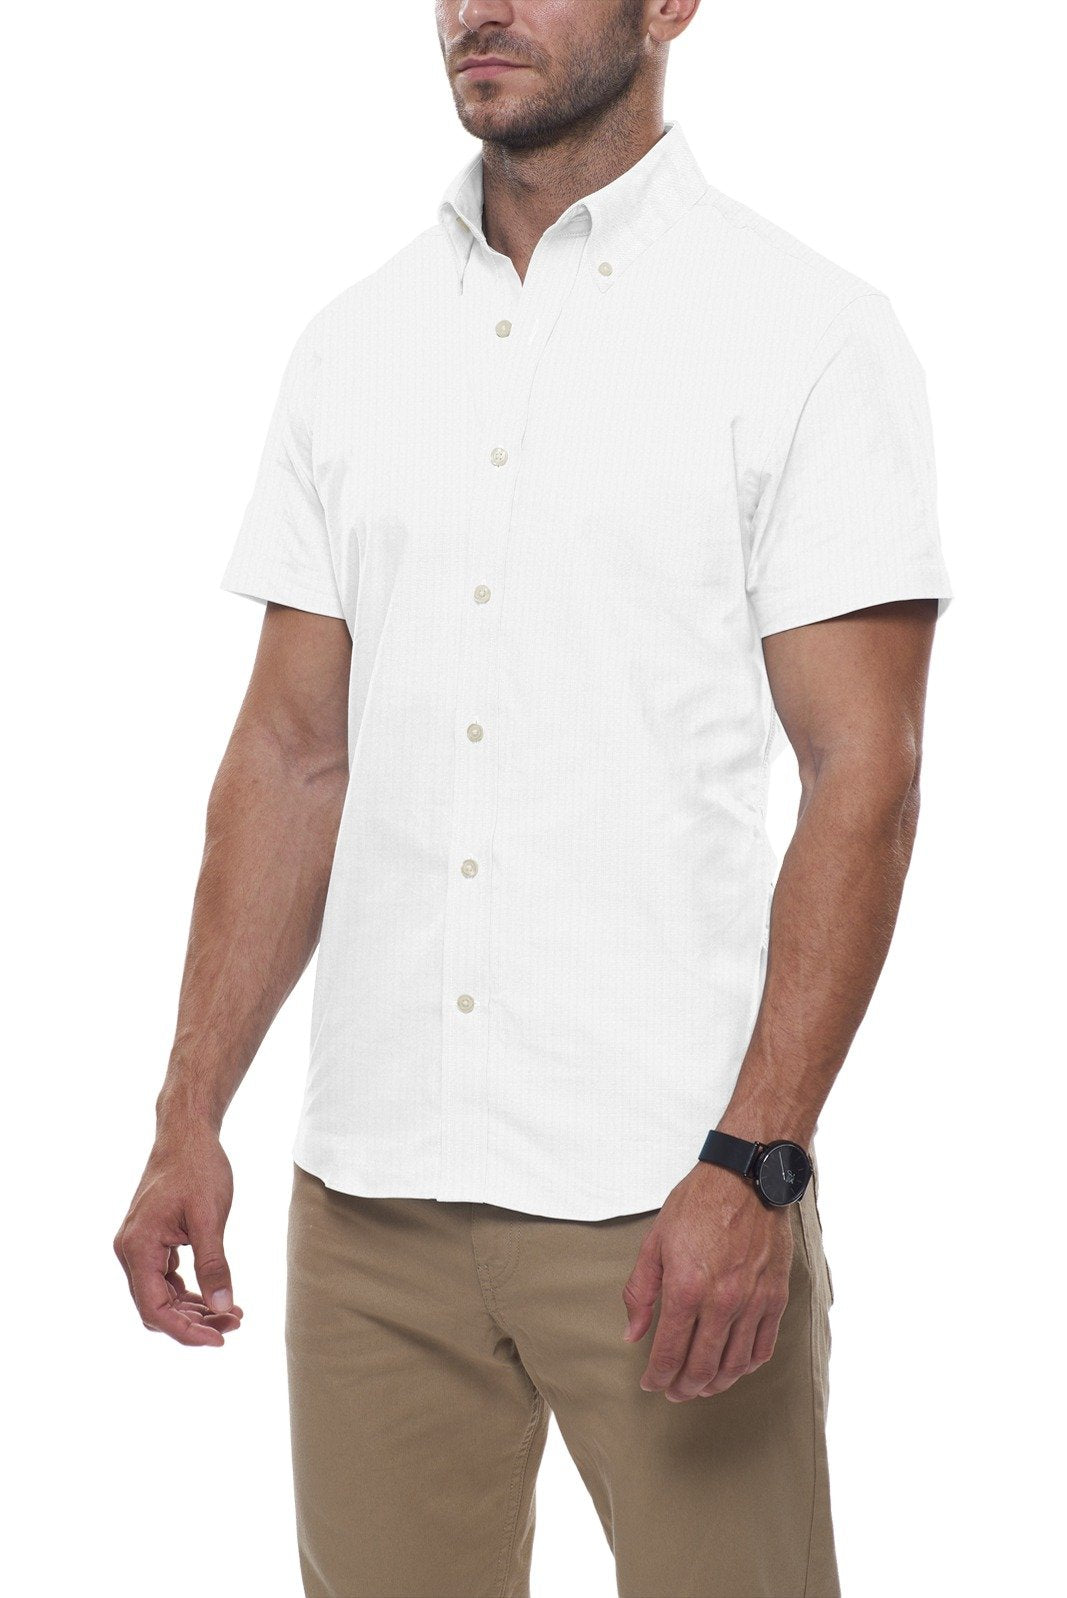 White Cotton Seersucker: Semi-Spread Collar, Short Sleeve